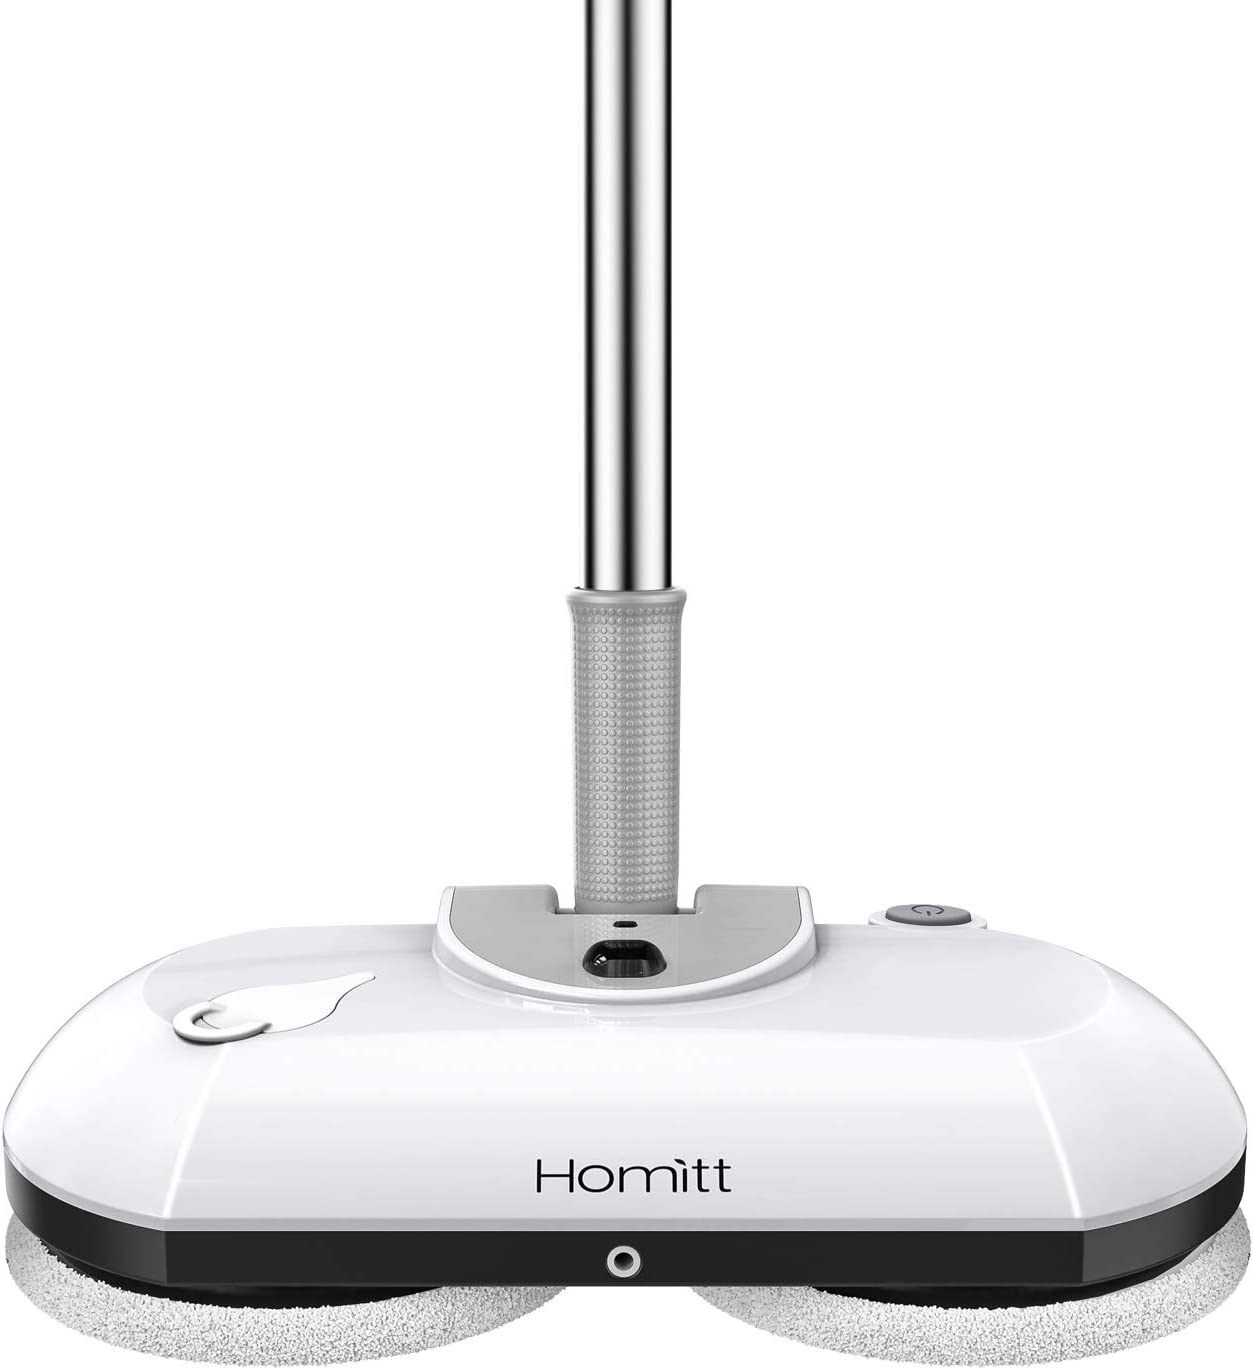 Homitt Electric Mop, Cordless Floor Scrubber for Floor Cleaning, Power Cordless Mop with Extension Handle, Electric Spin Mop with 4 Reusable Mop Pads